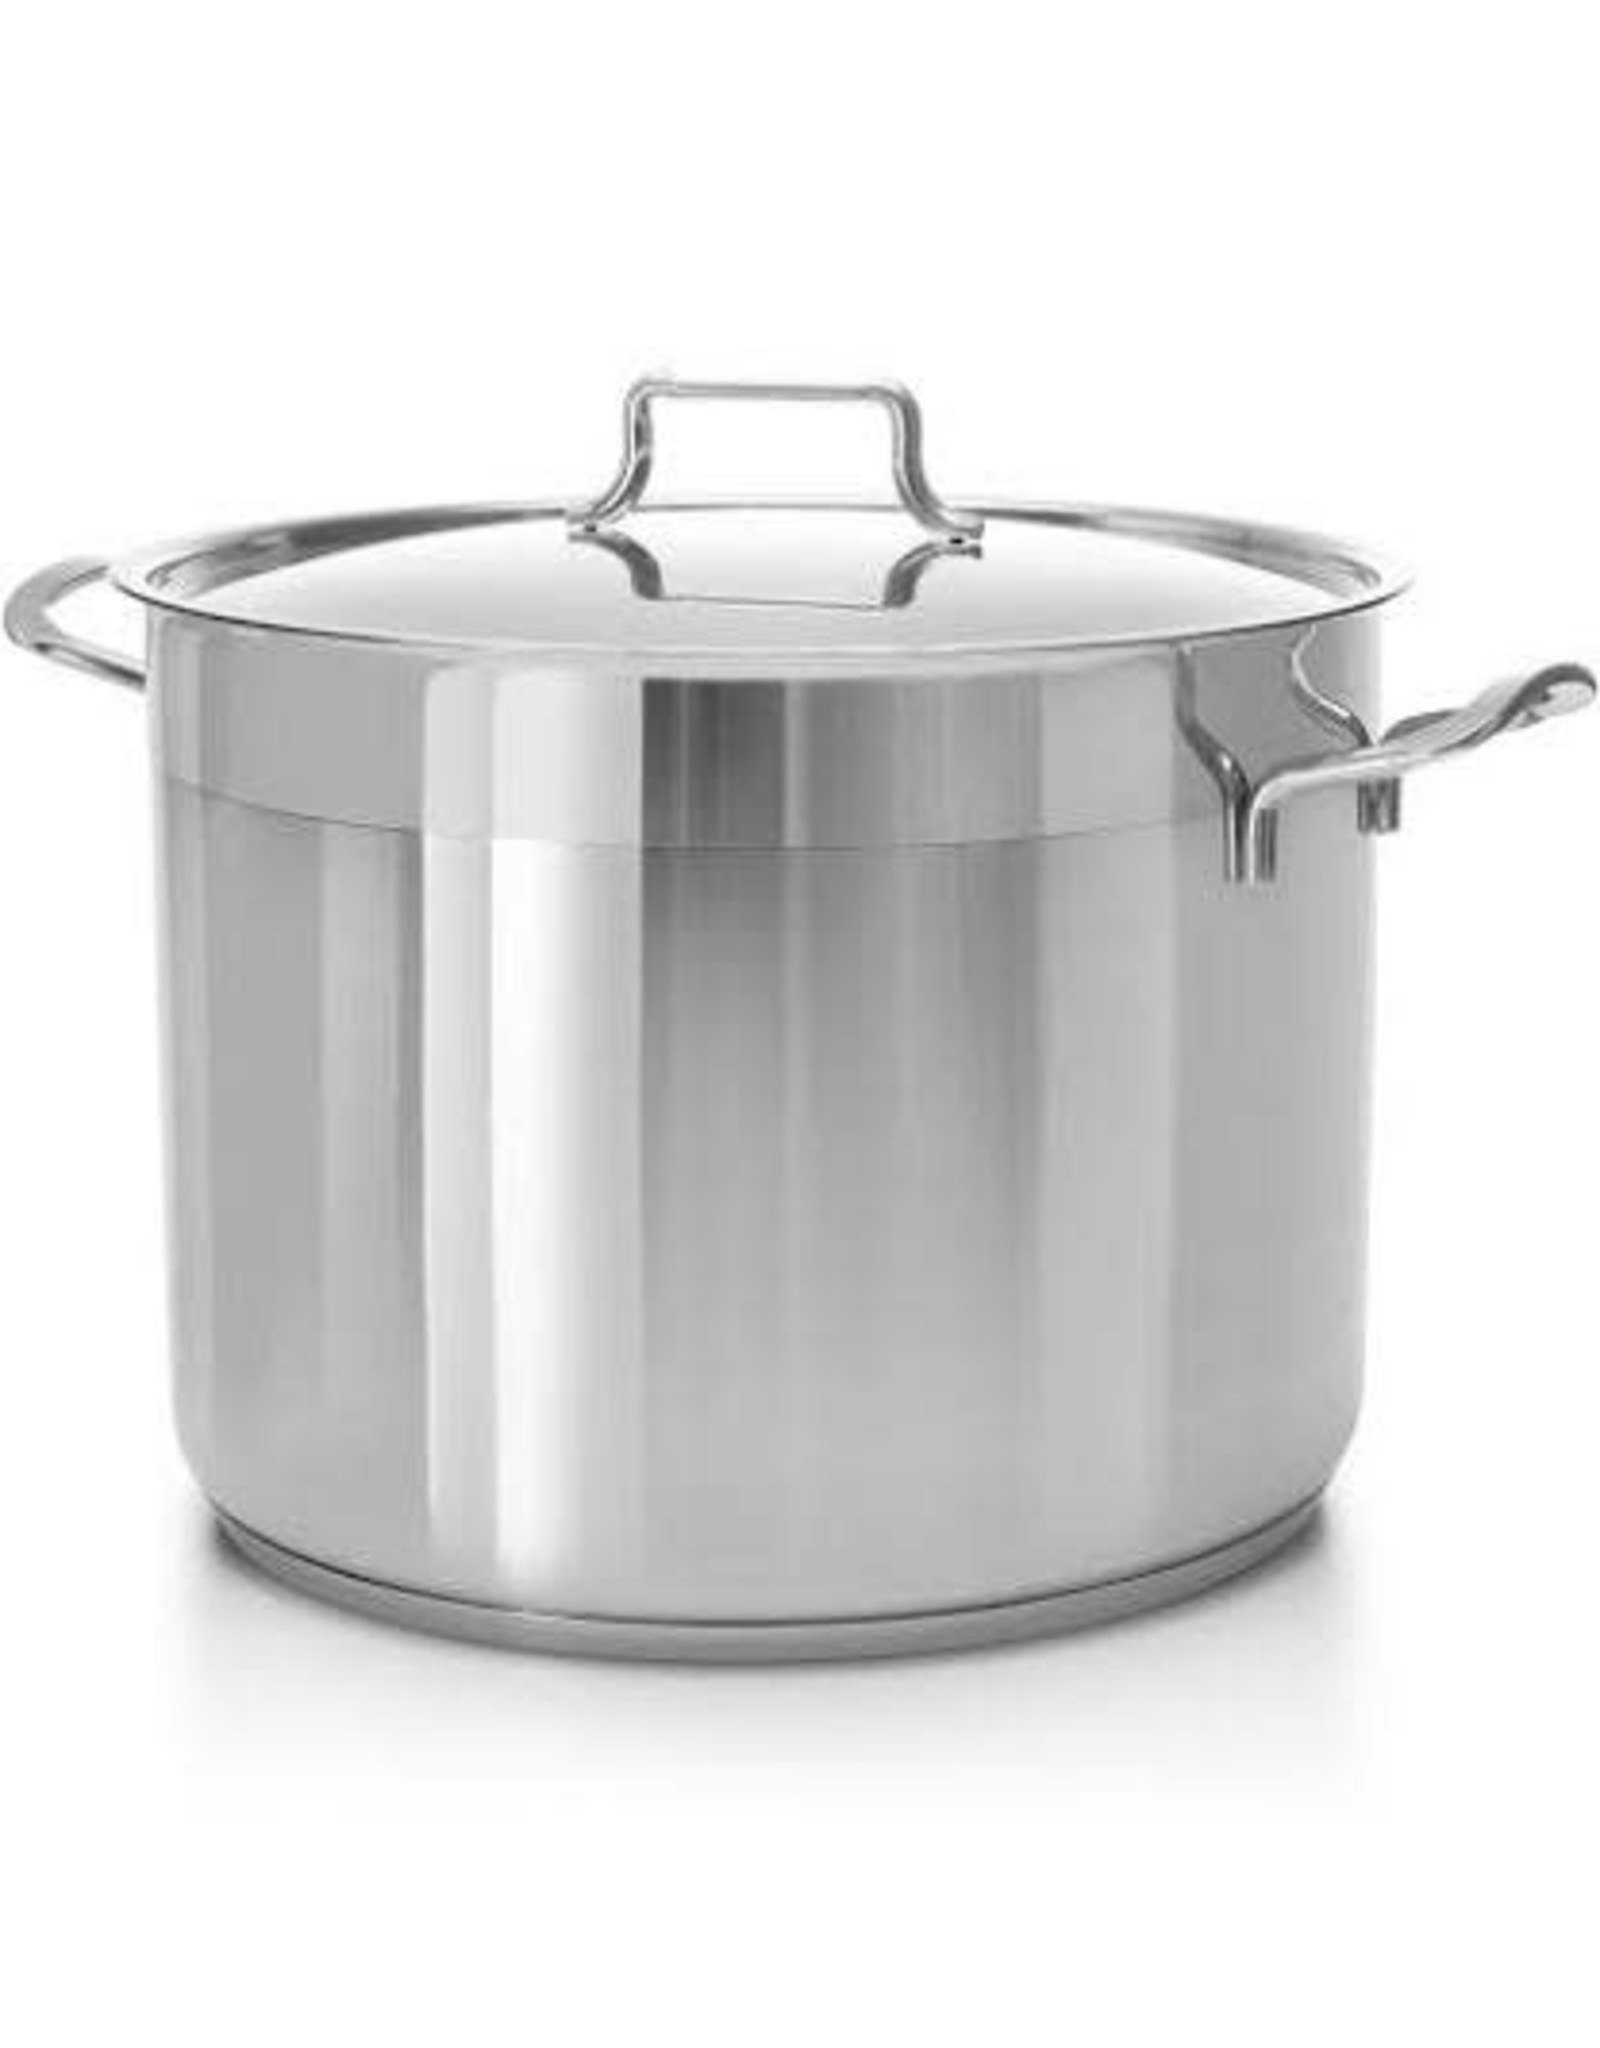 H5 Hascevher Pot - 5 Quart